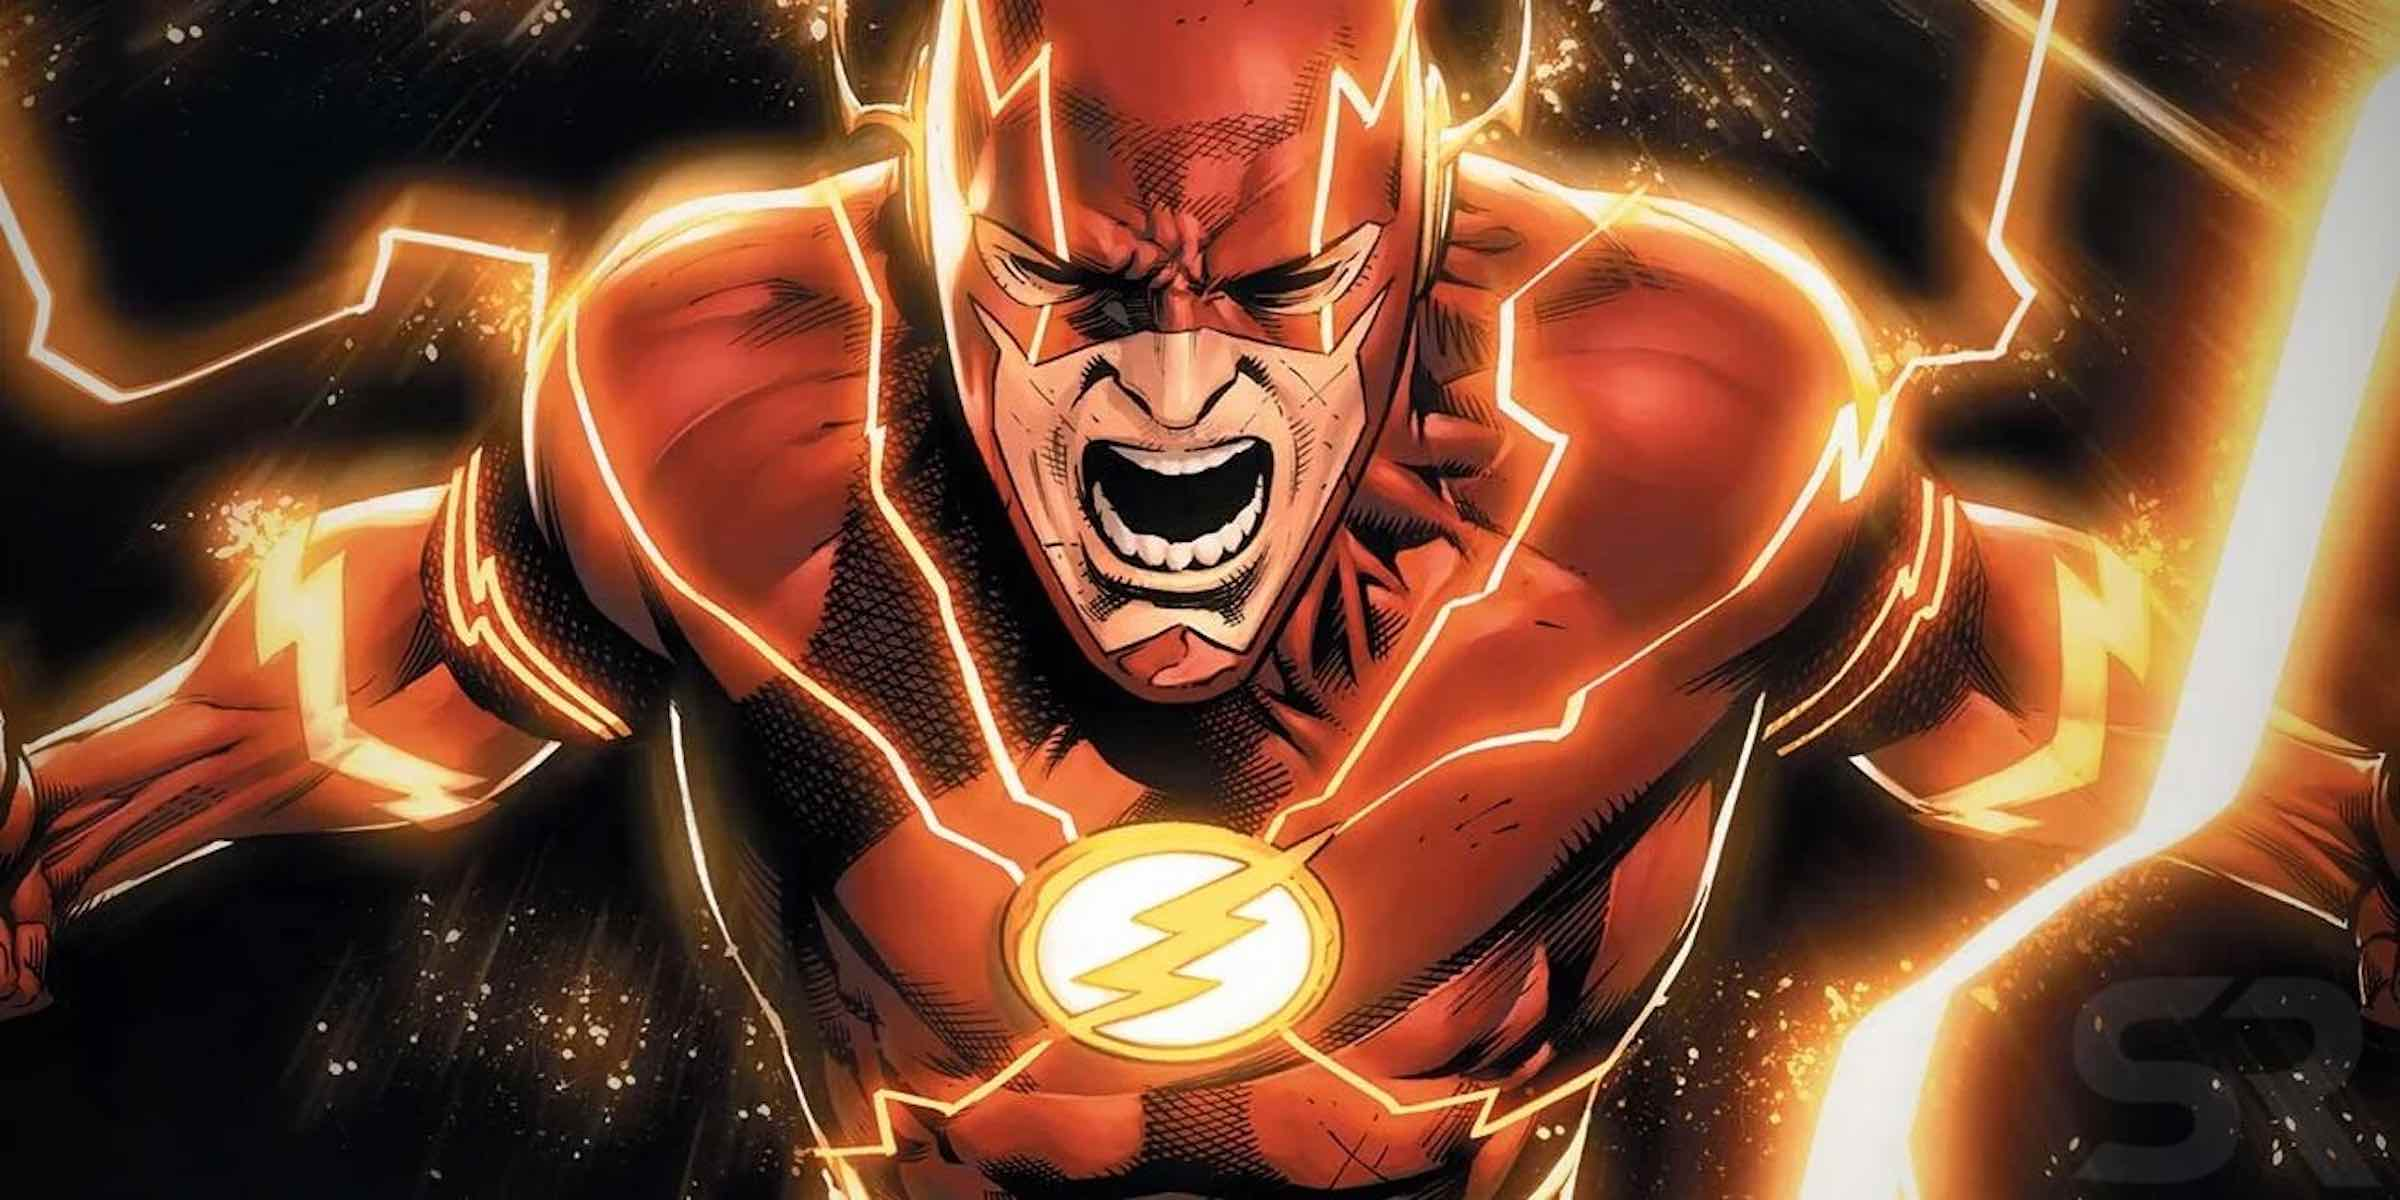 Does 'The Flash' TV Show Follow the Comic?